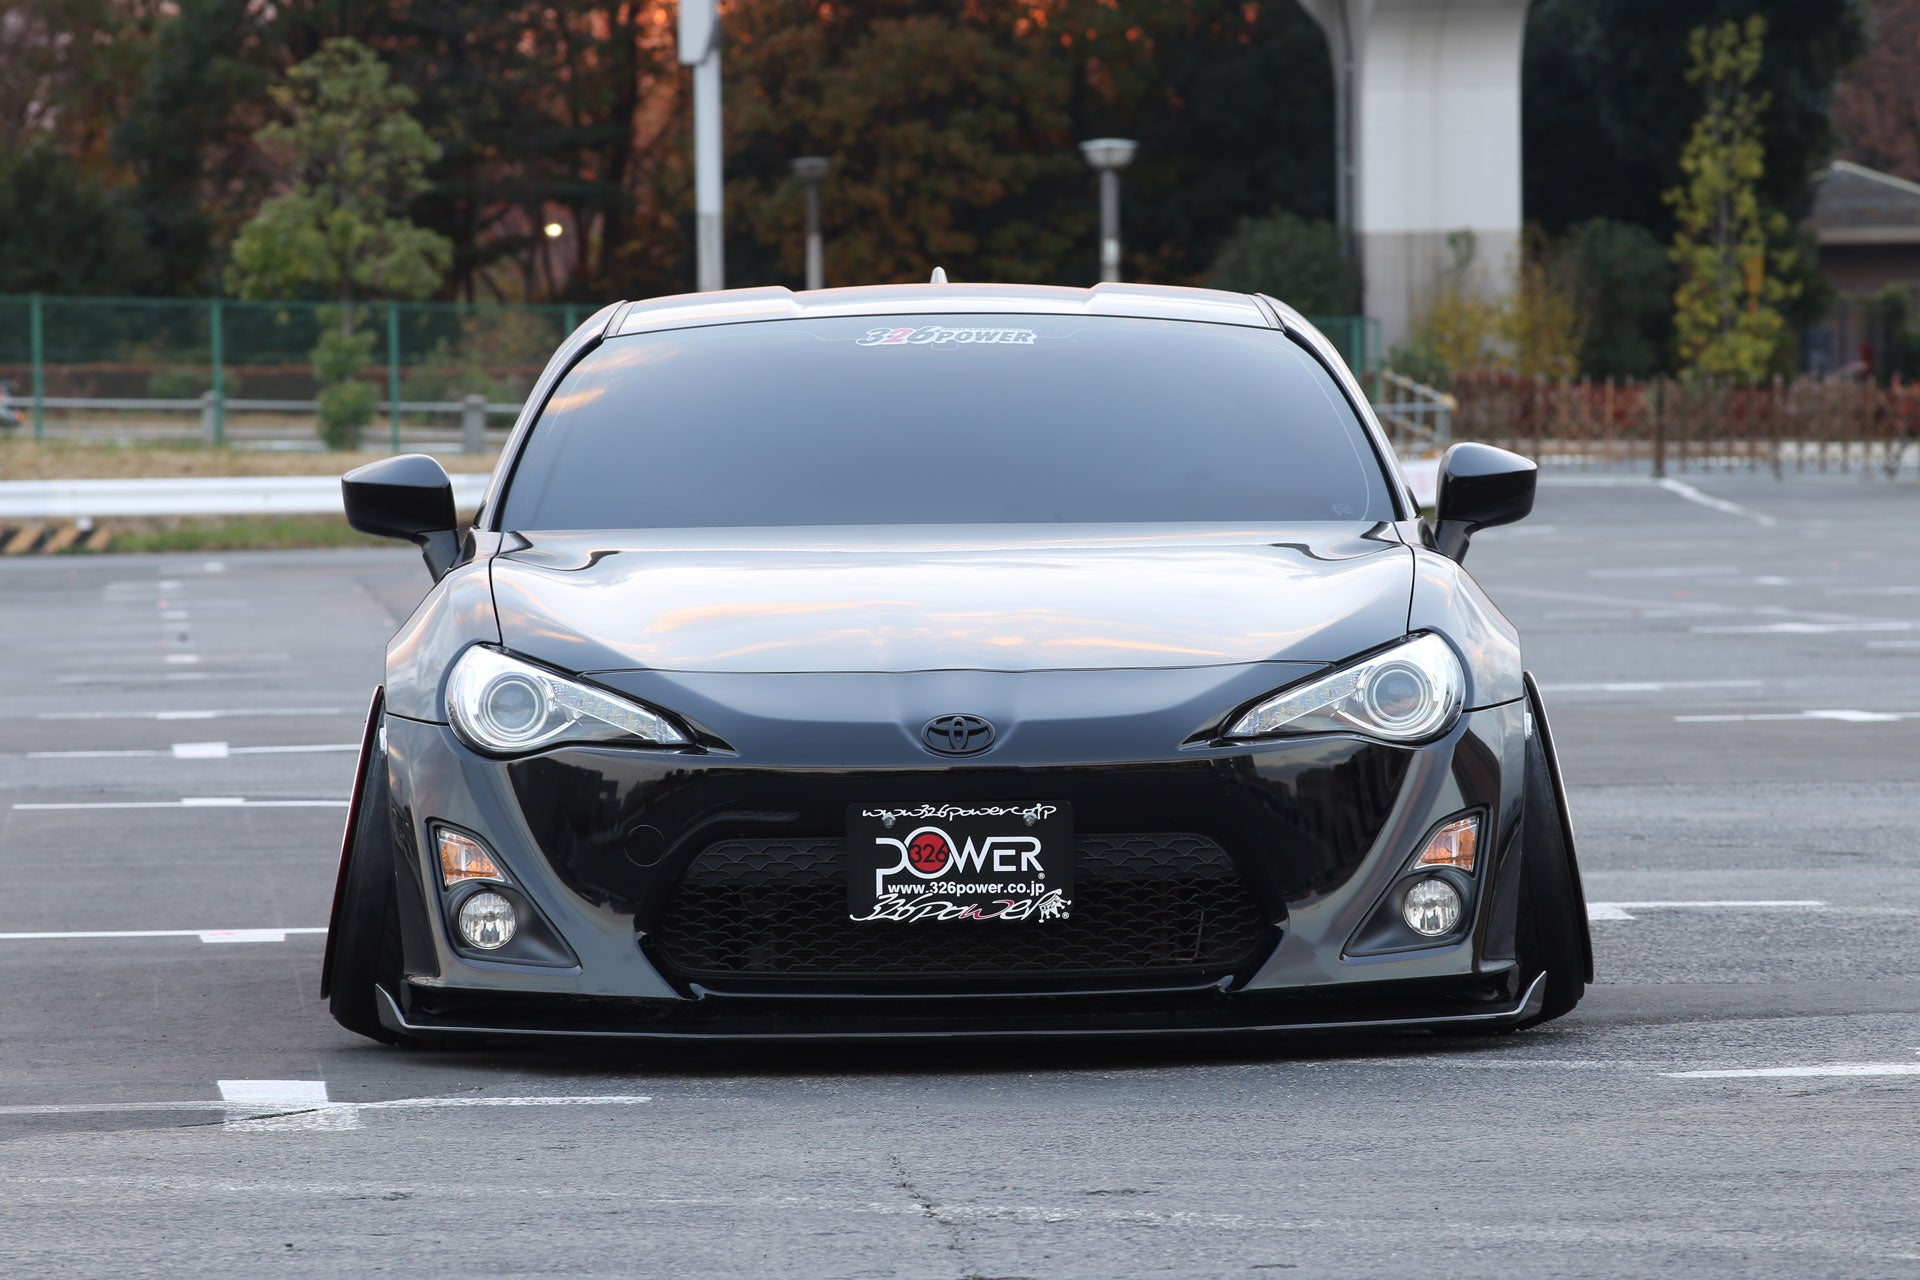 326POWER 3D☆STAR Lip Kit for Toyota GT86 (Zenki model)